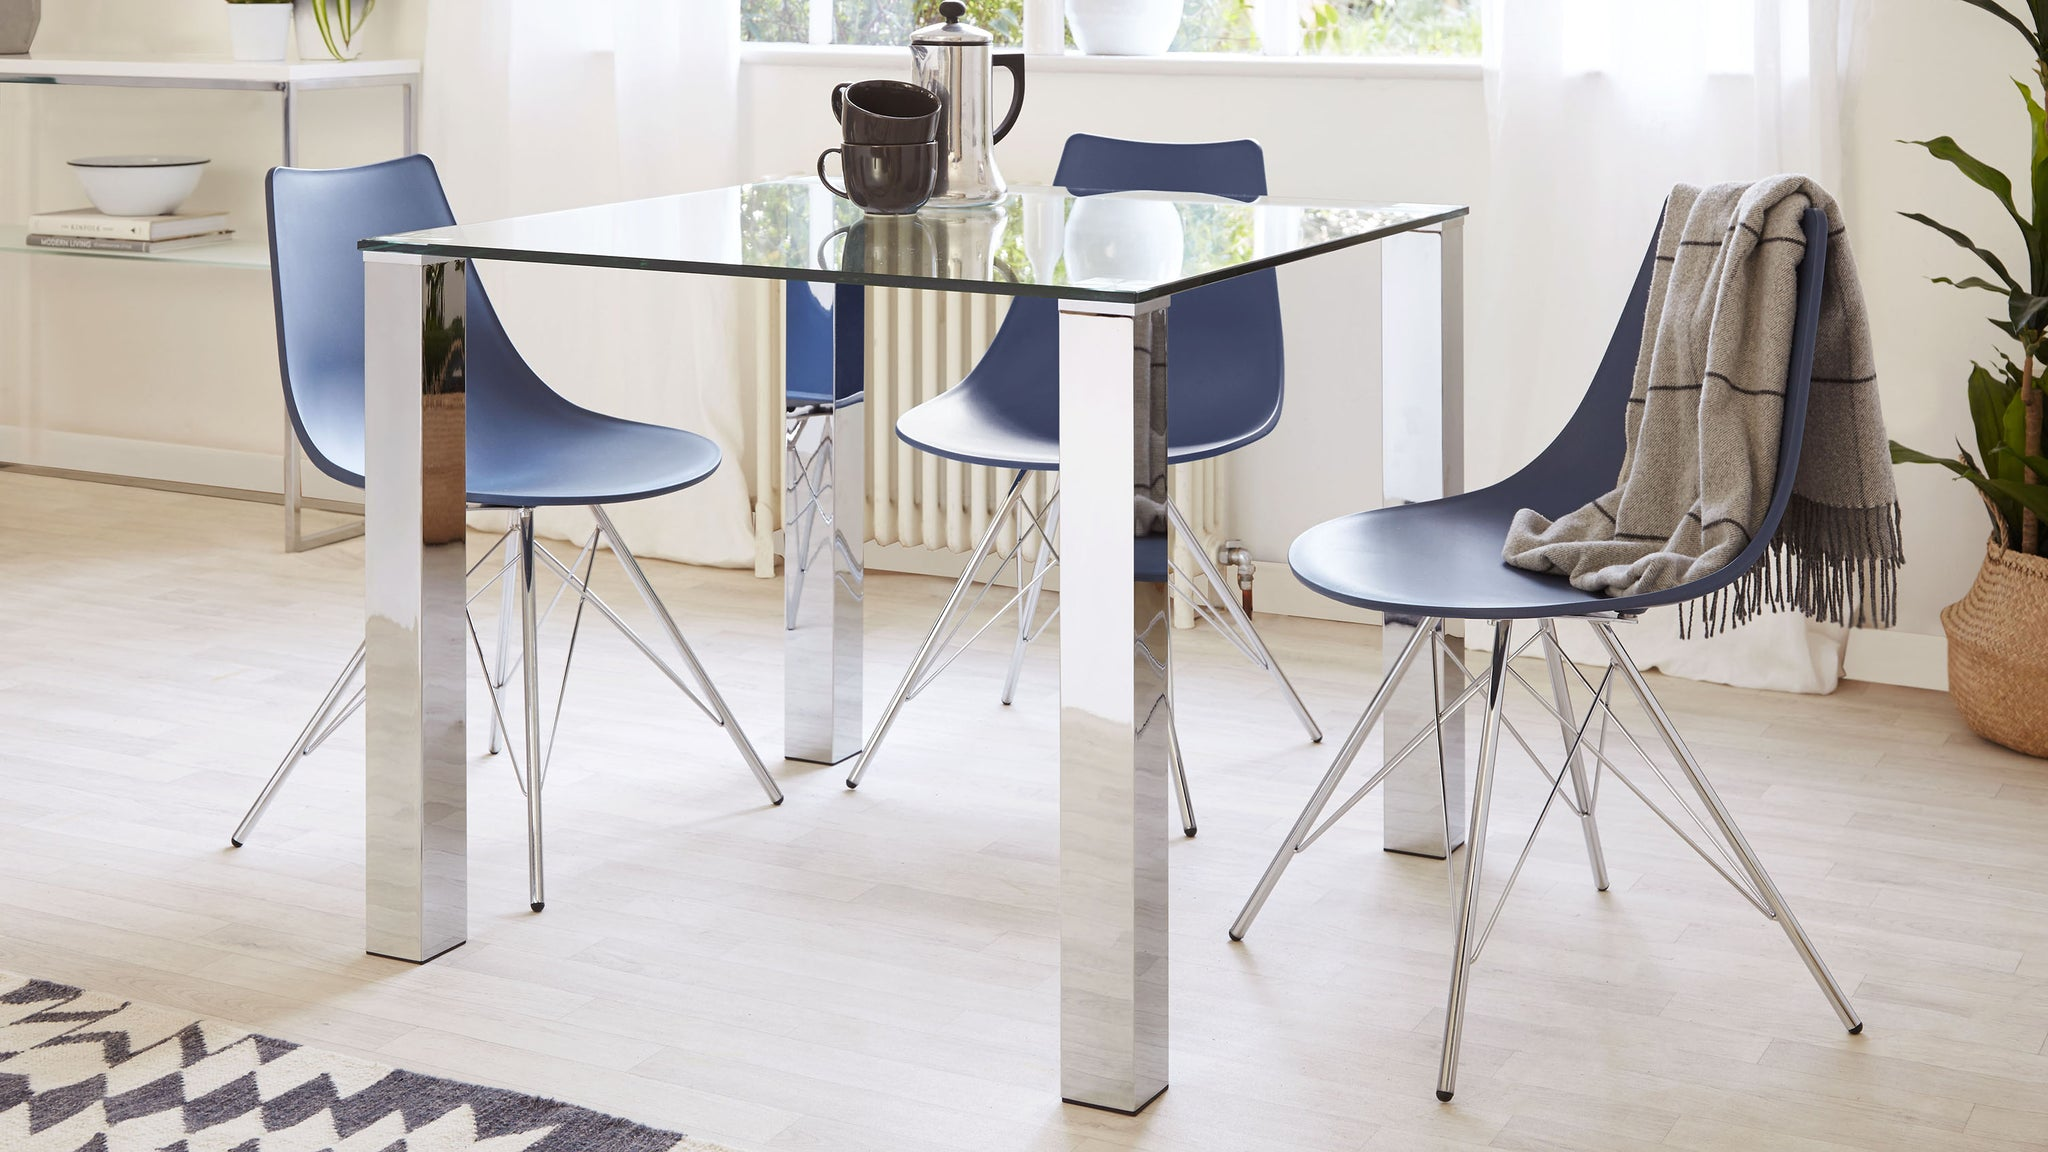 Tiva 2 to 4 Seater Small Glass and Chrome Dining Table